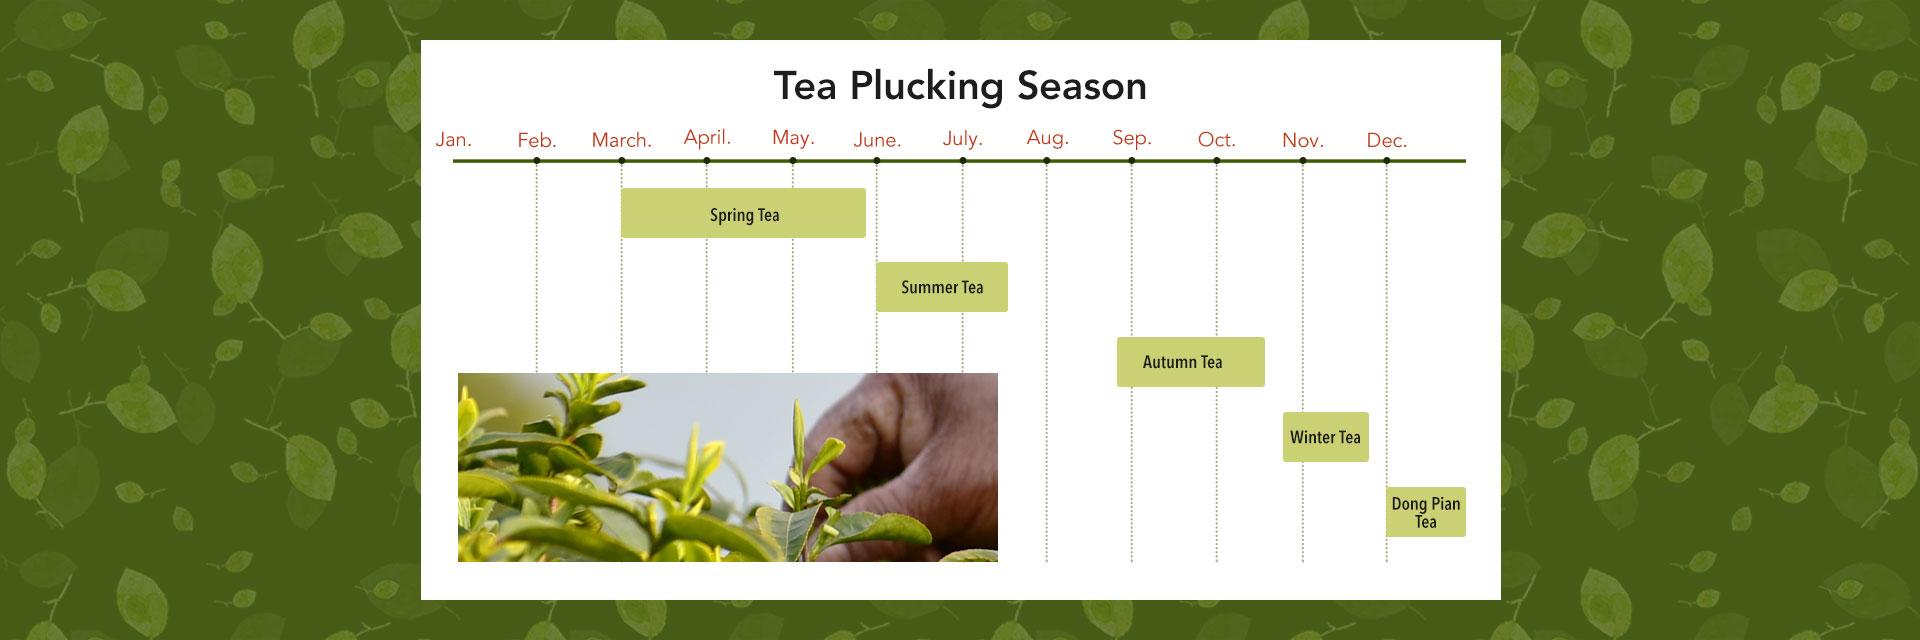 Comparing Spring Tea and Autumn Tea